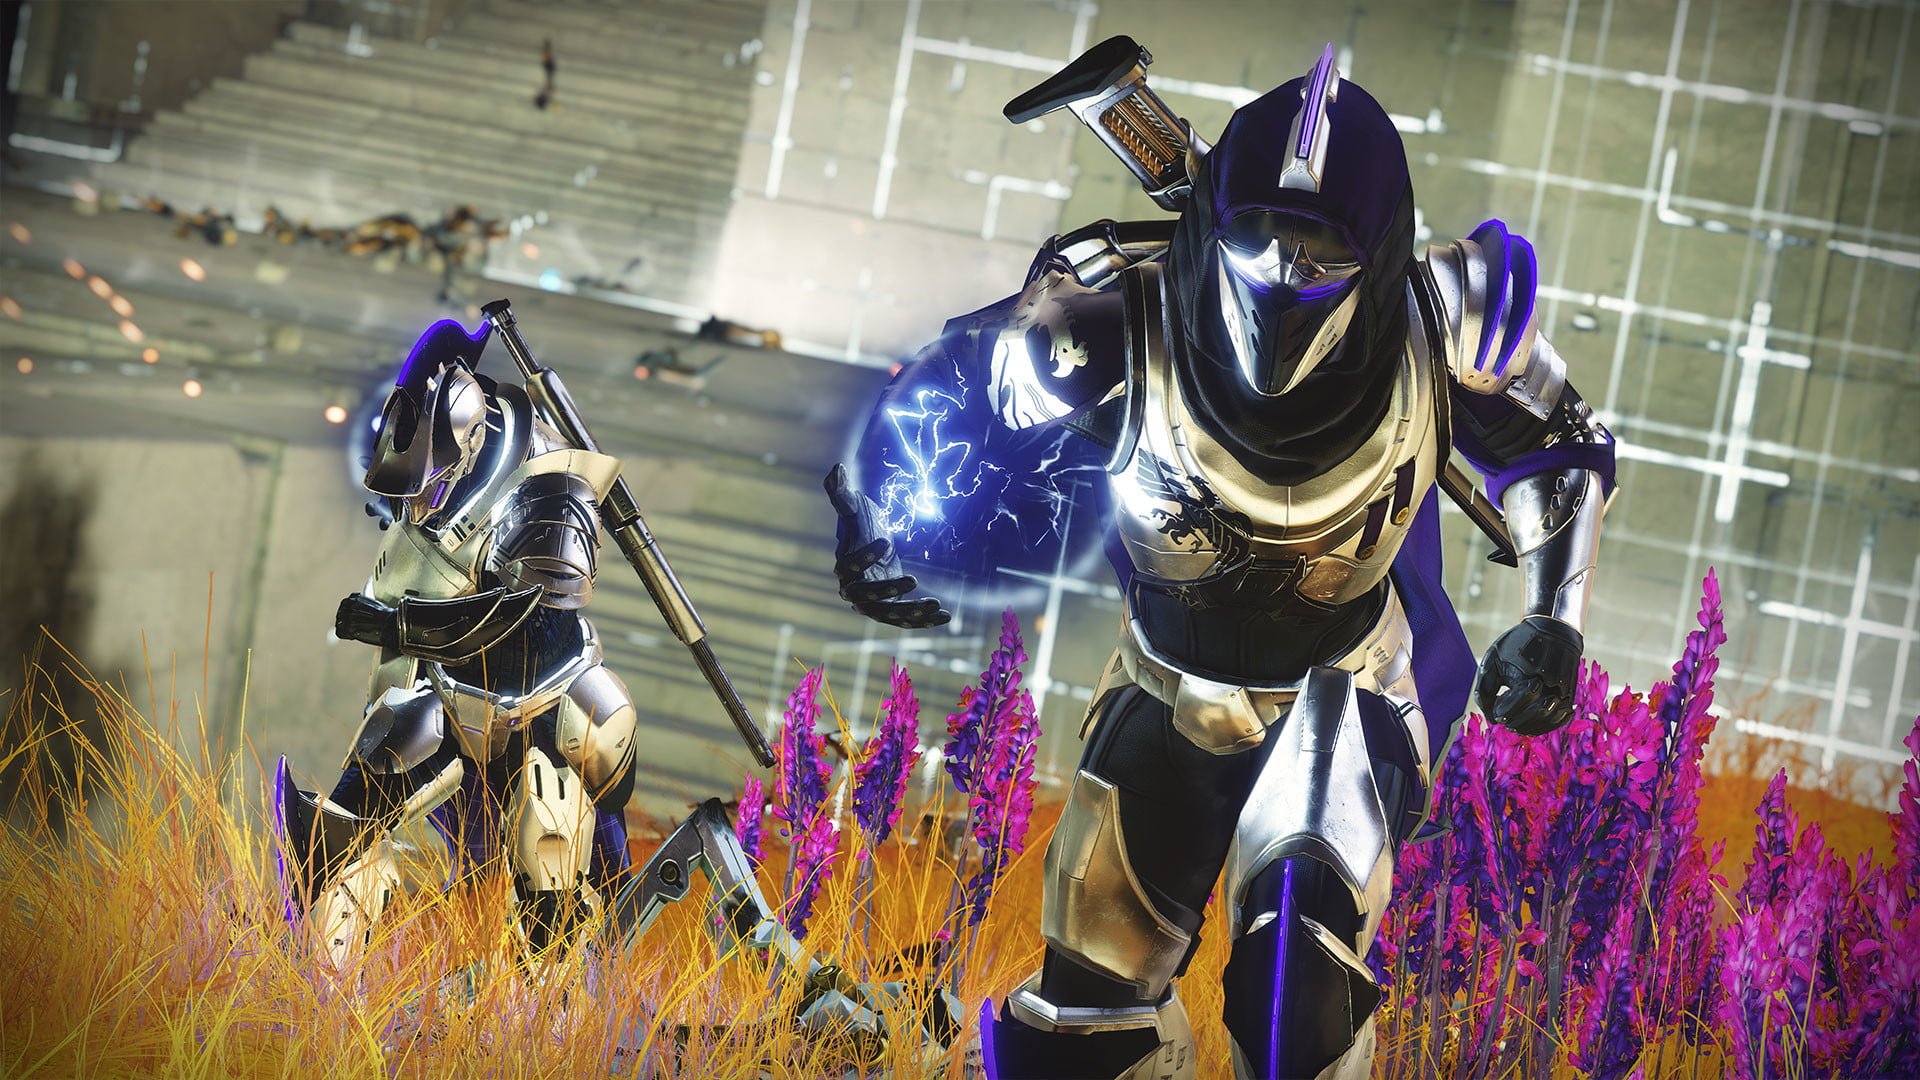 Destiny 2 Memento quest guide: How to get the Bastion exotic fusion rifle